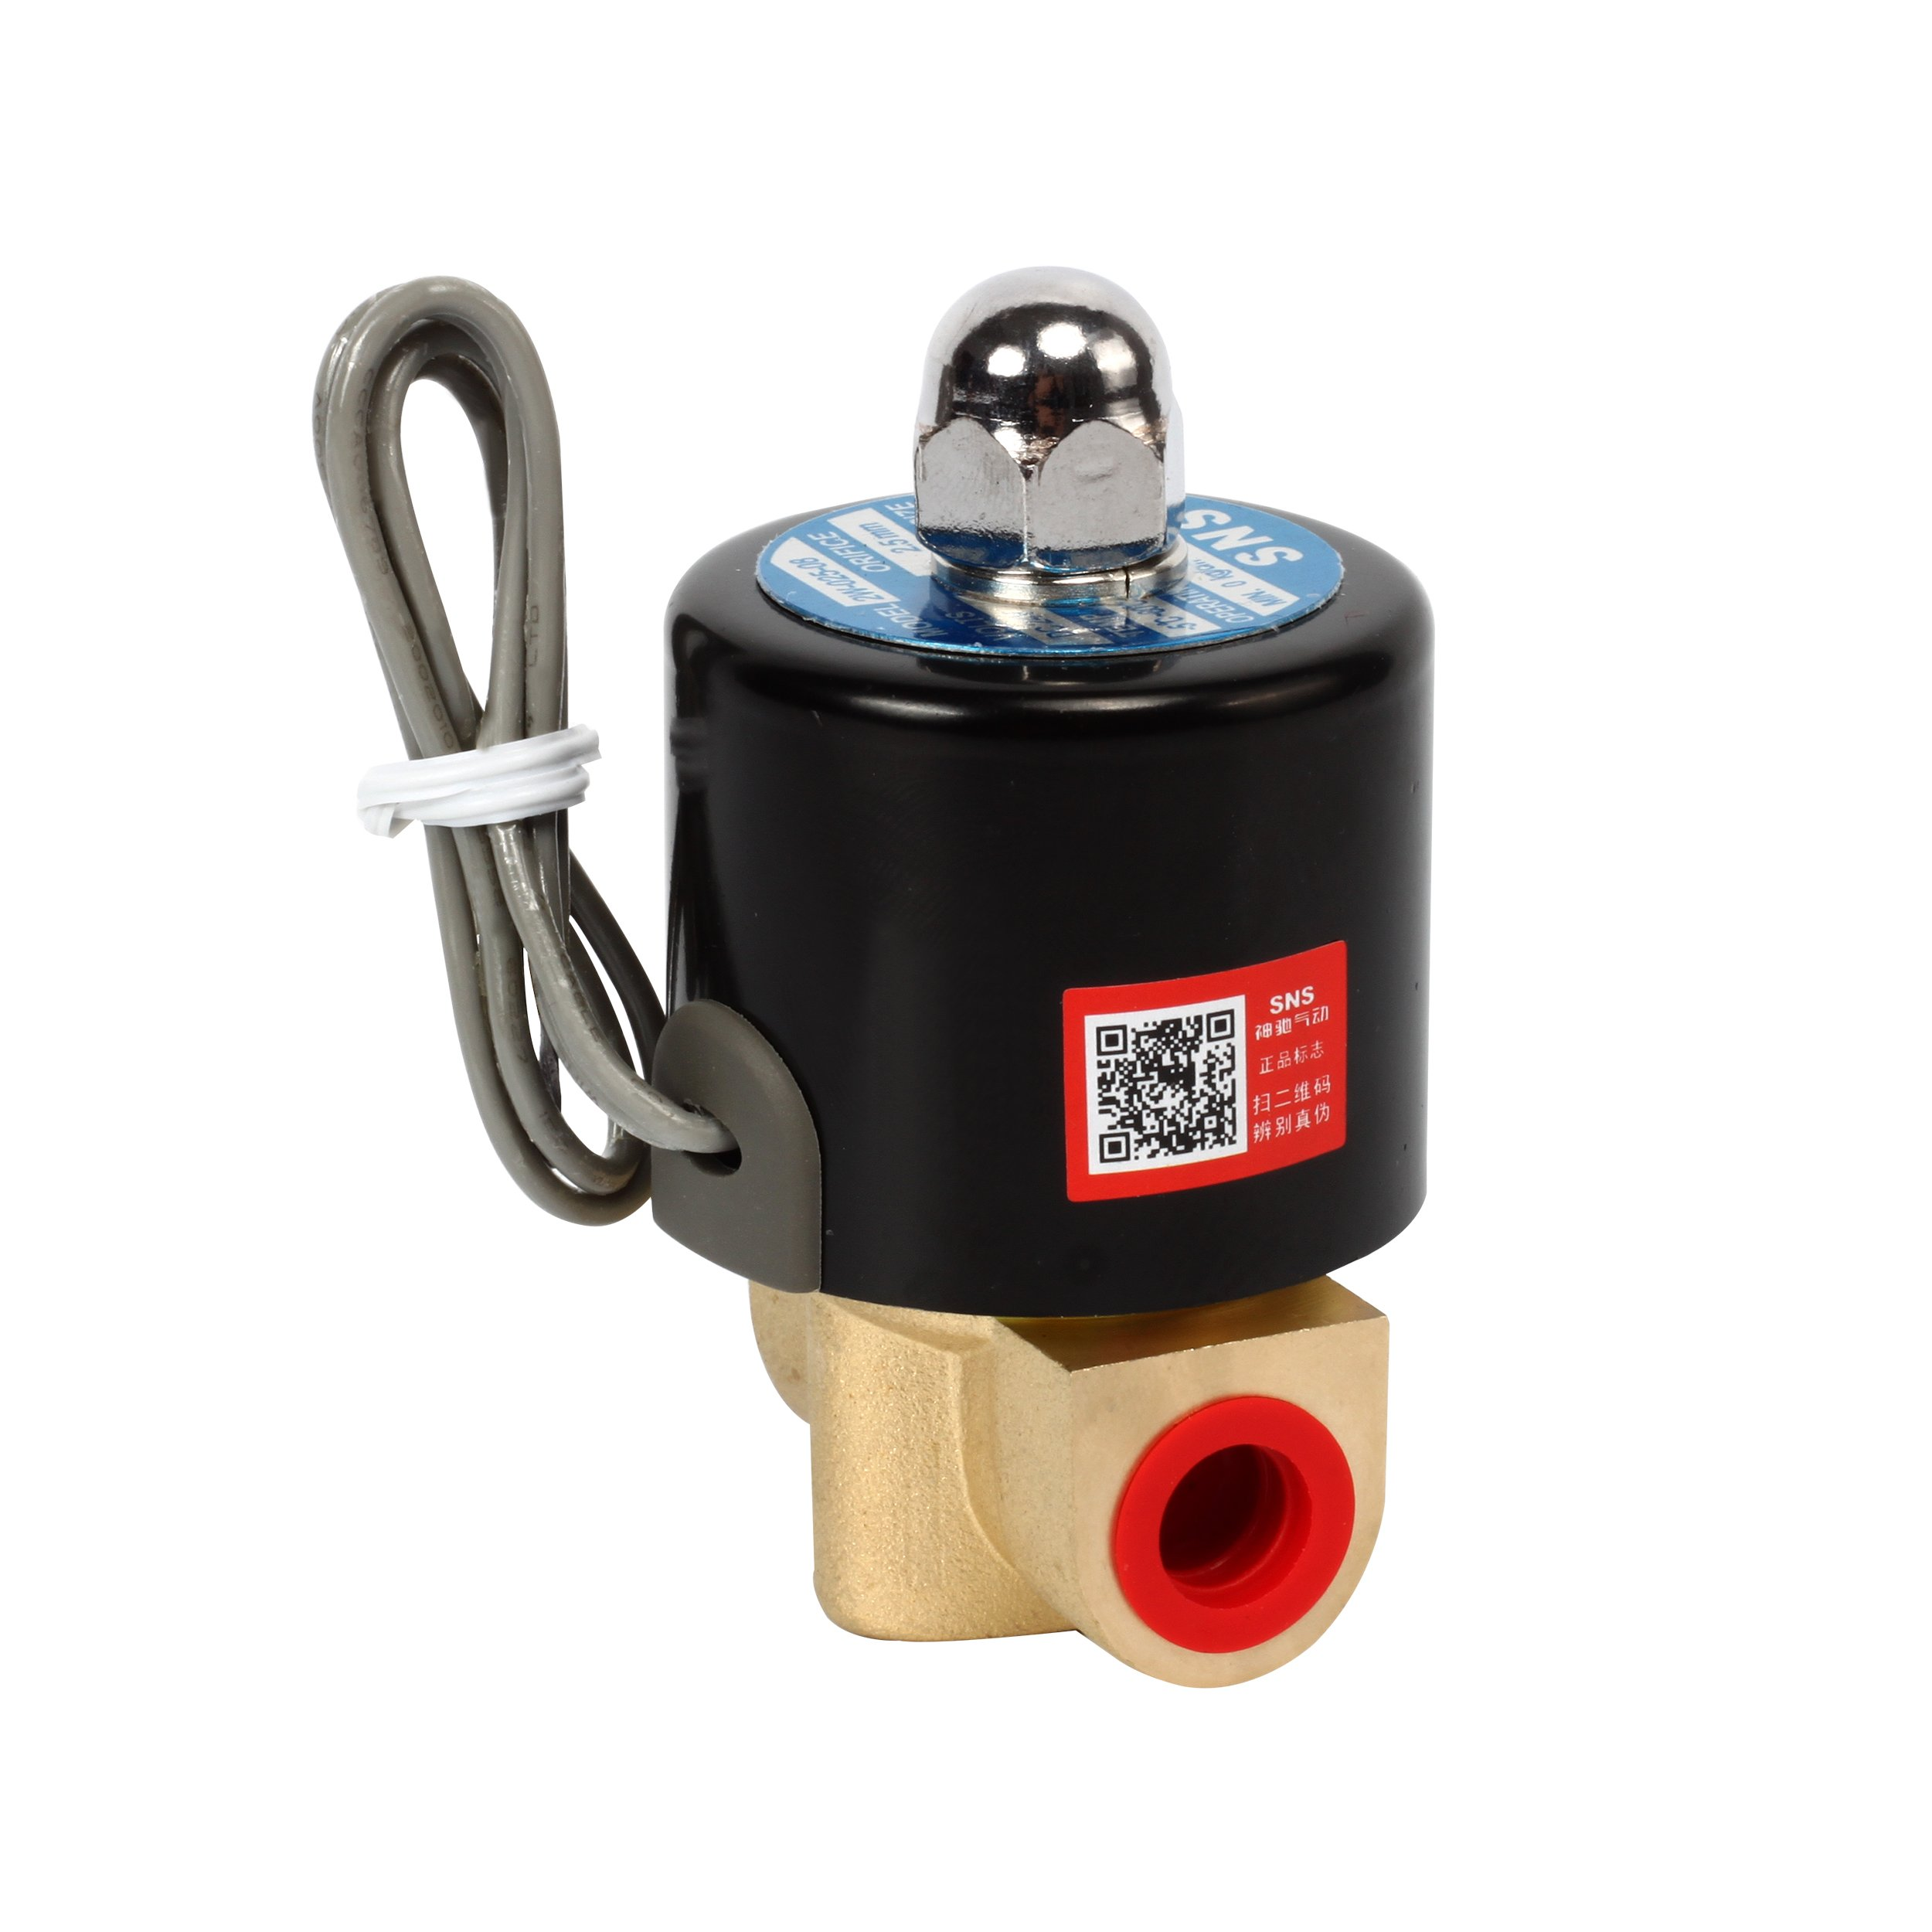 SNS 2W025-08 1/4'' DC12V NPT Brass Electric Solenoid Valve Normally Closed Water, Air, Diesel by SNS (Image #4)